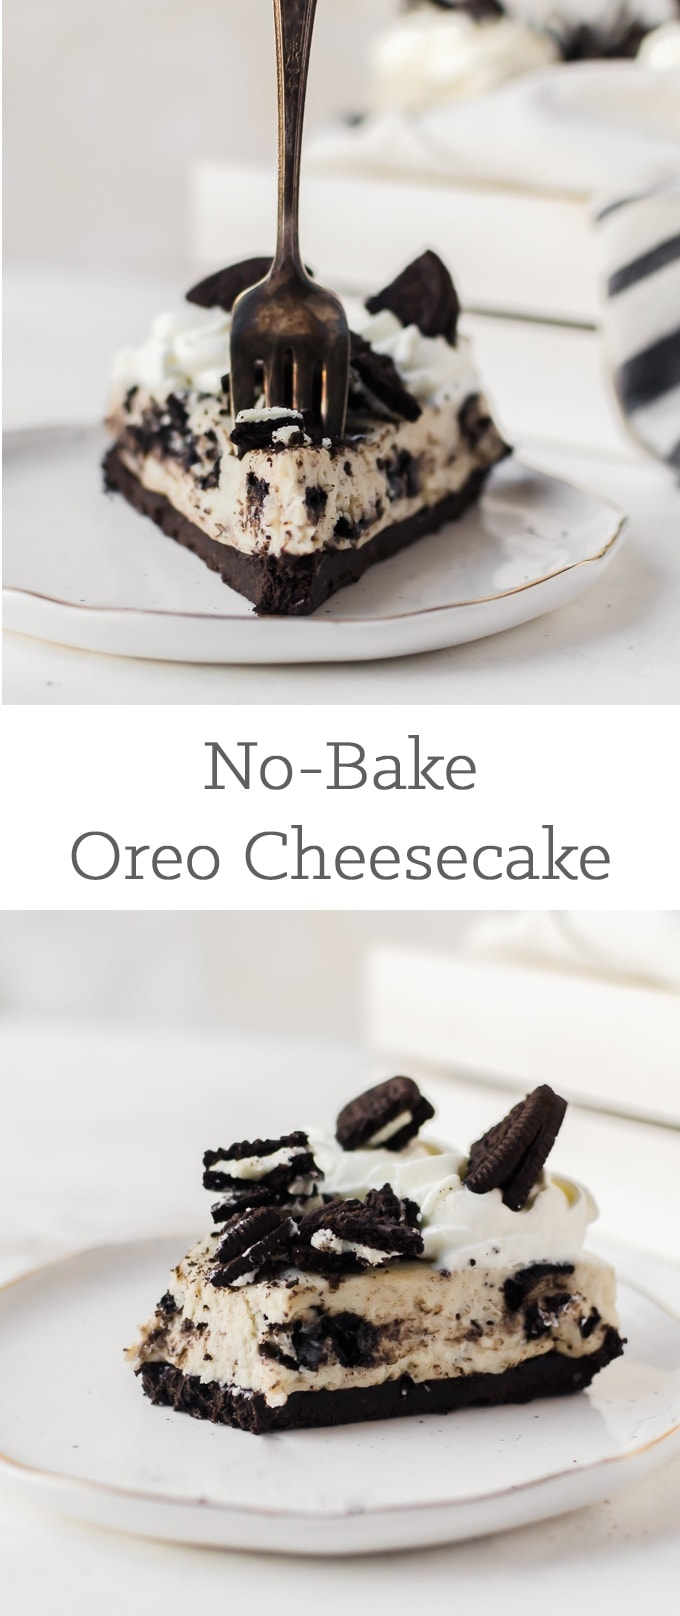 You will want to make this easy no-bake oreo cheesecake every week!